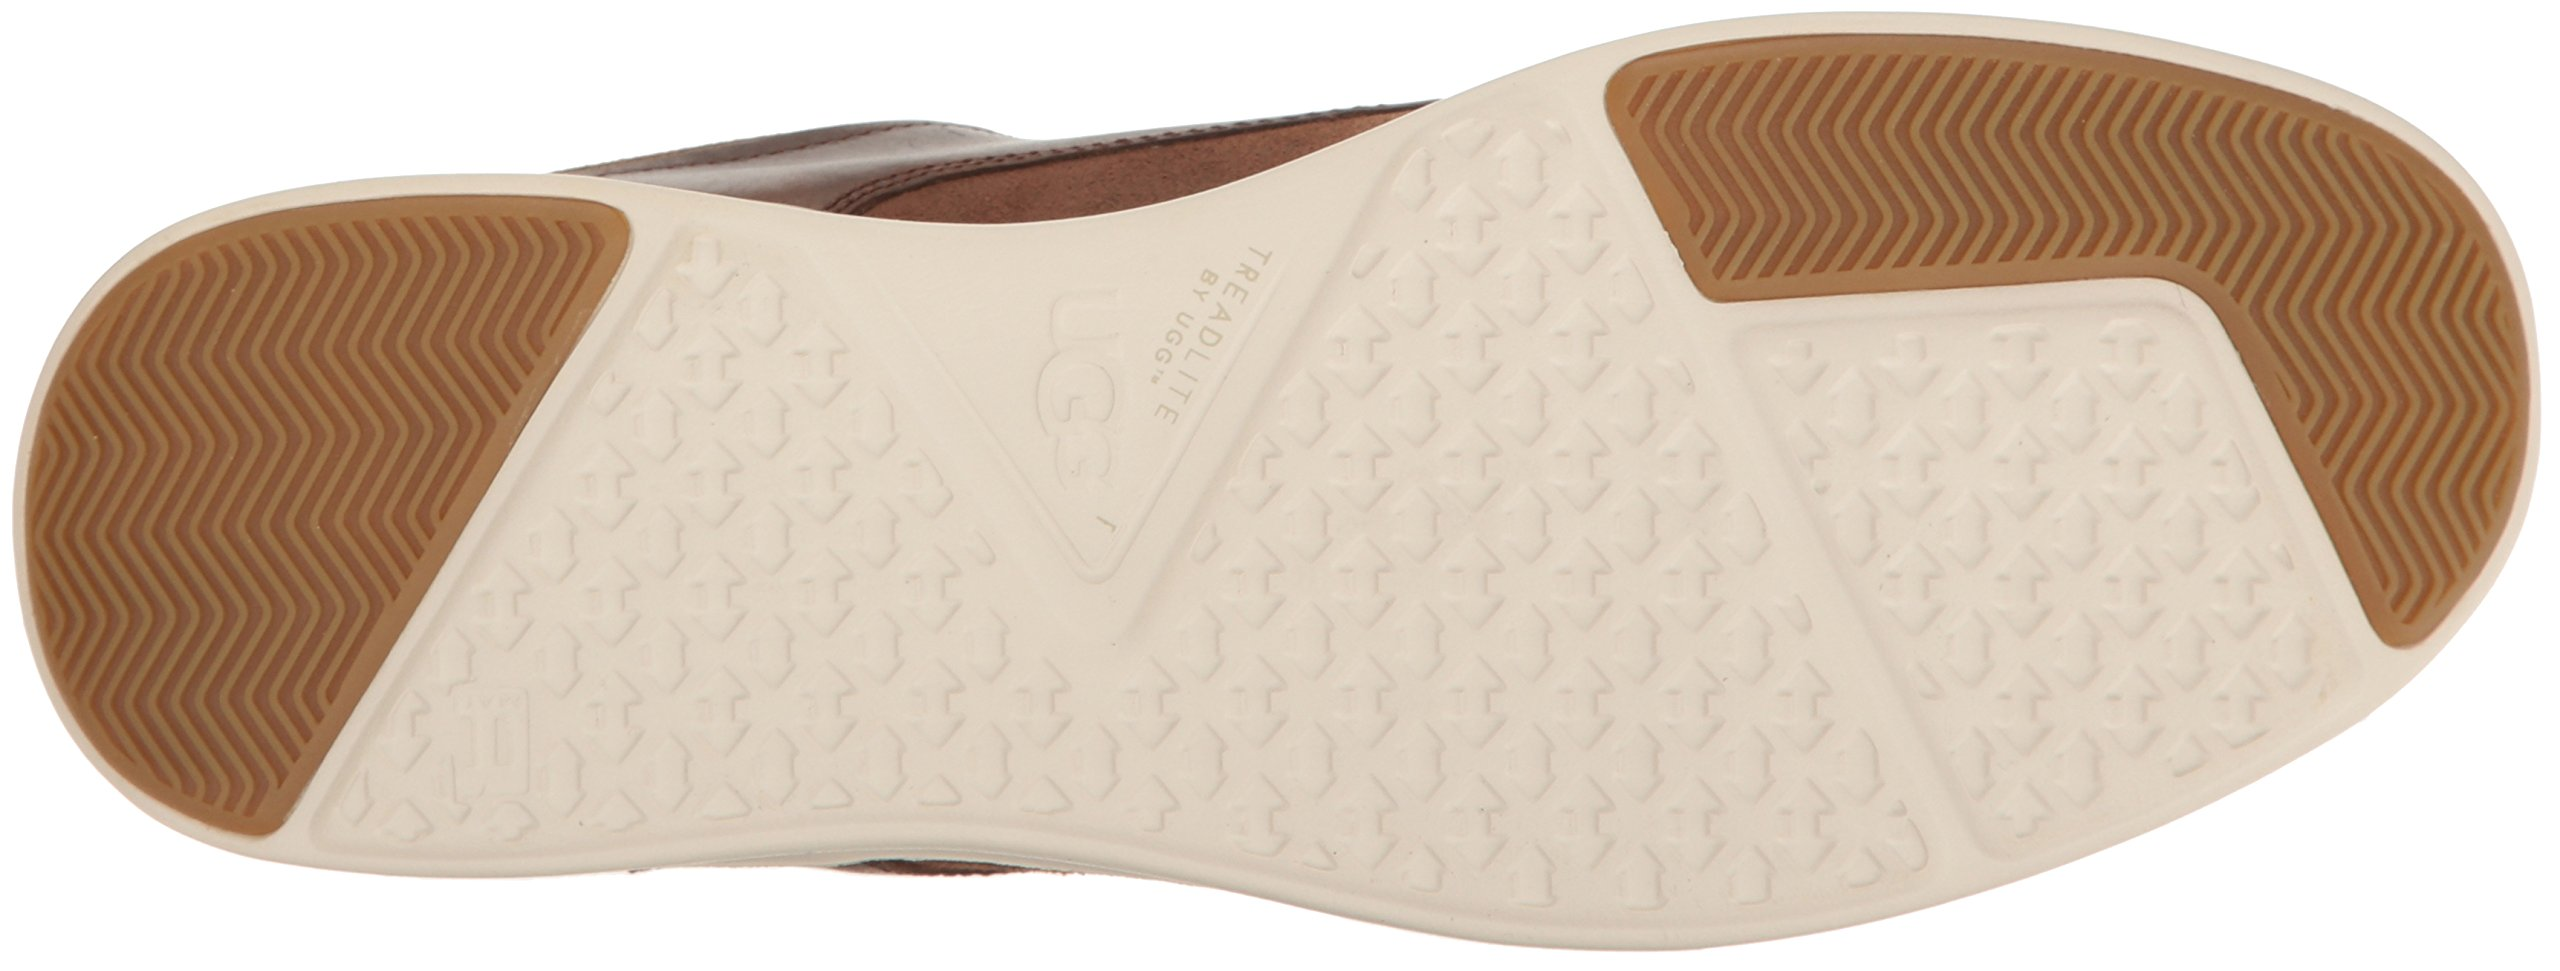 UGG Men's Hepner Fashion Sneaker Chestnut 11.5 M US by UGG (Image #3)